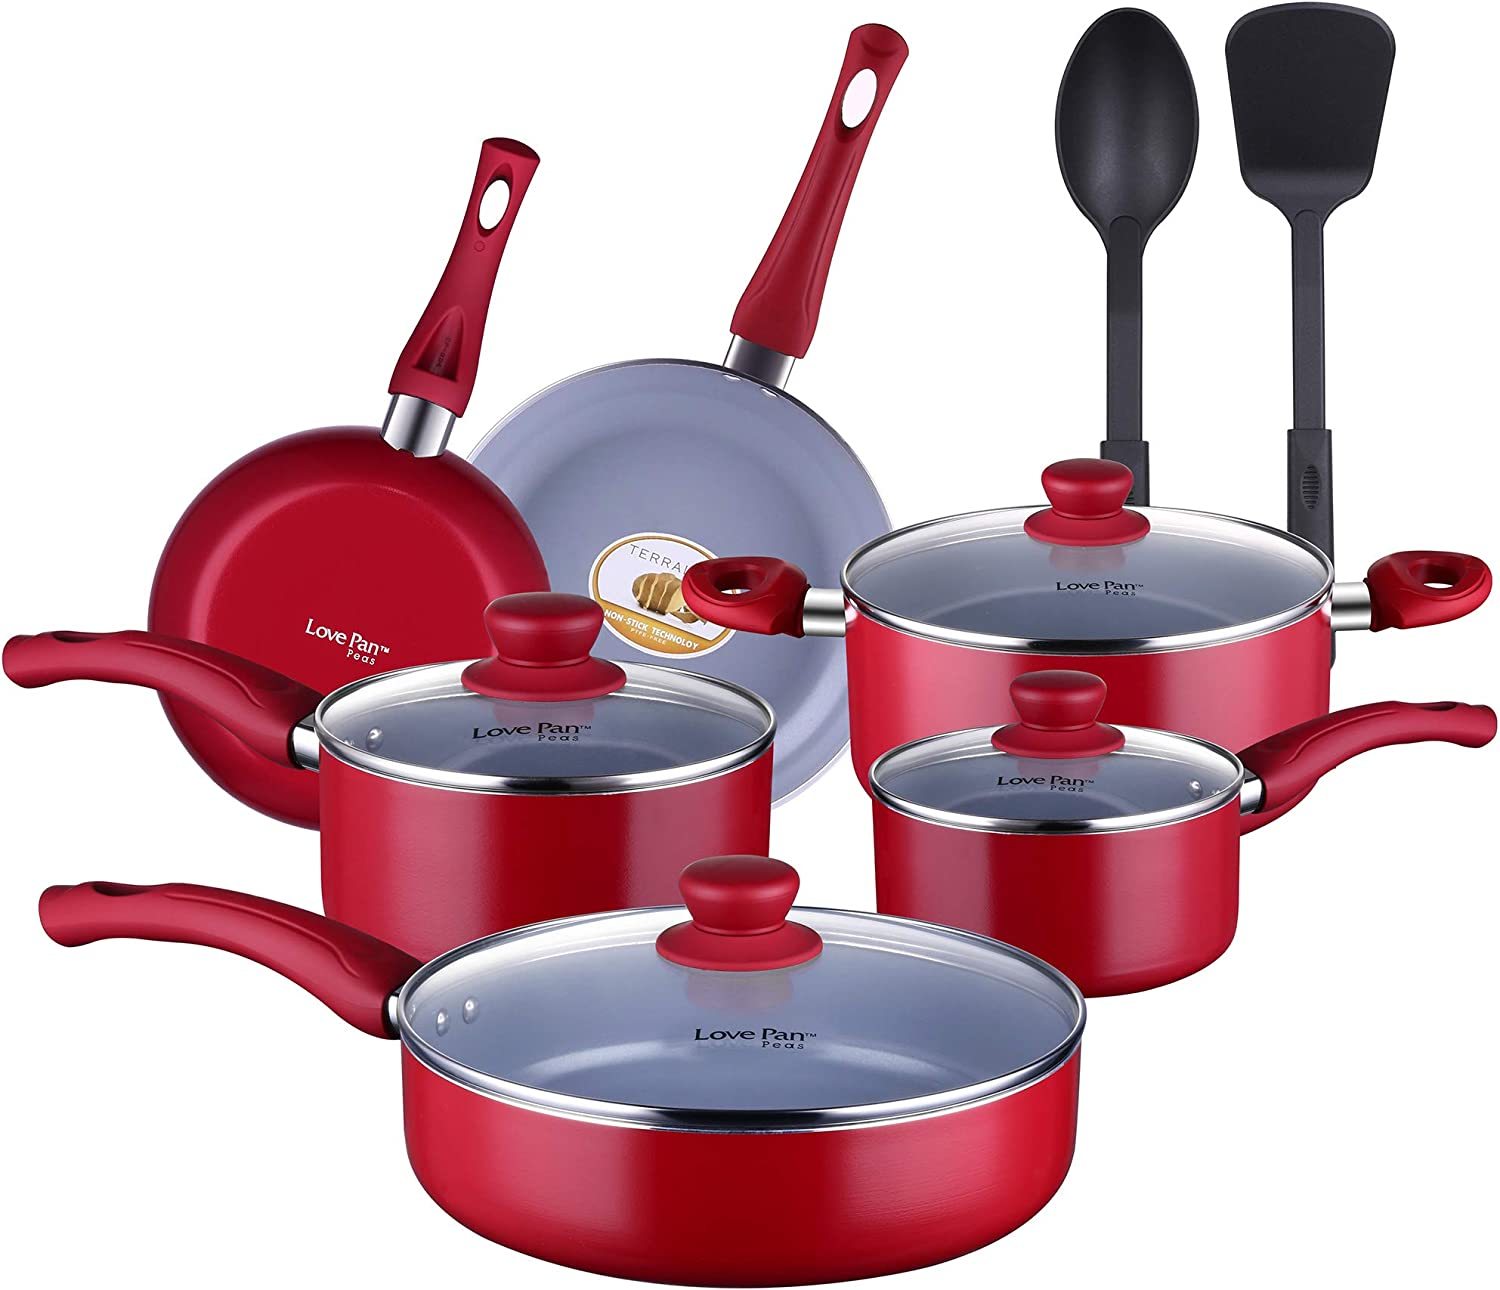 Amazon Com Americook Non Stick Ceramic Kitchen Cookware Set Pots And Pan Set Non Stick Cooking Pots Non Toxic Frying Pan Sauce Pan 12 Piece Red Kitchen Dining